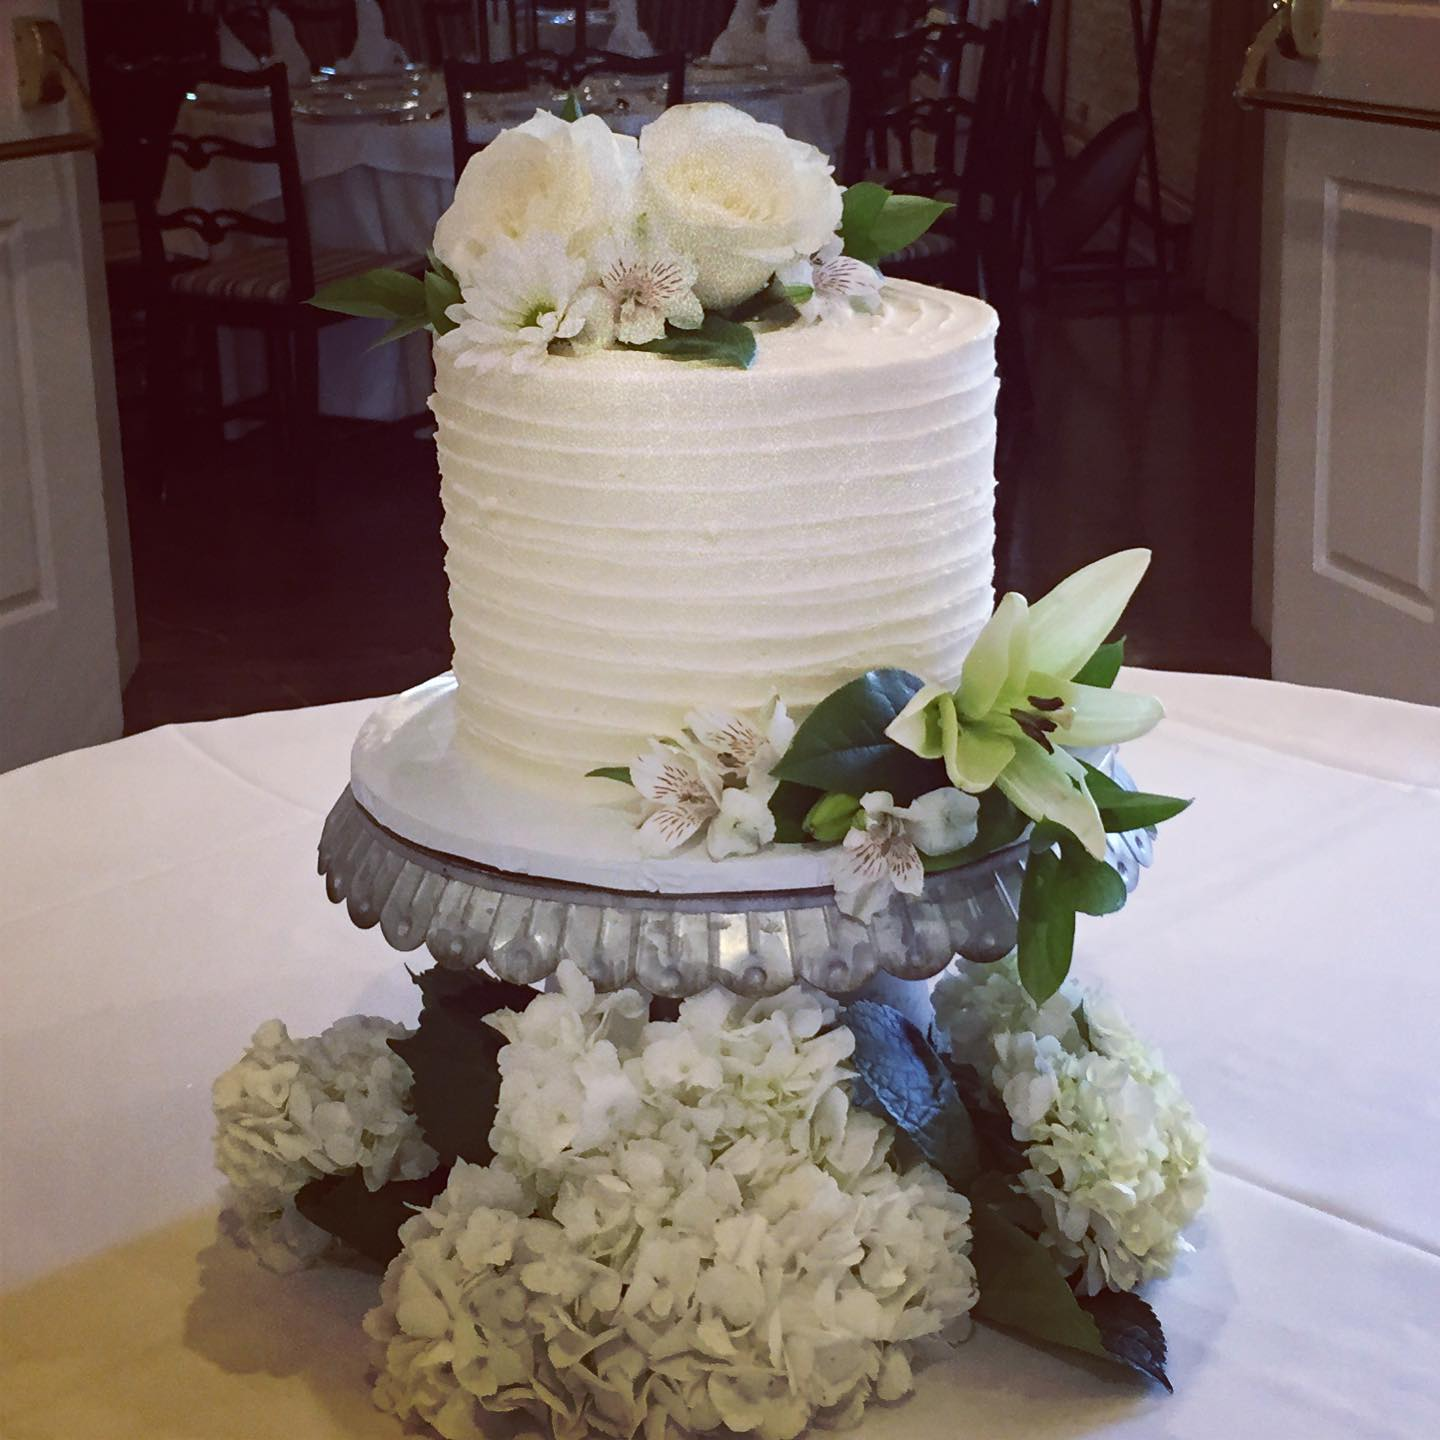 Wedding Cakes Pictures.Cakeview Com Wedding Cakes Cupcakes Cookies Dessert Buffets